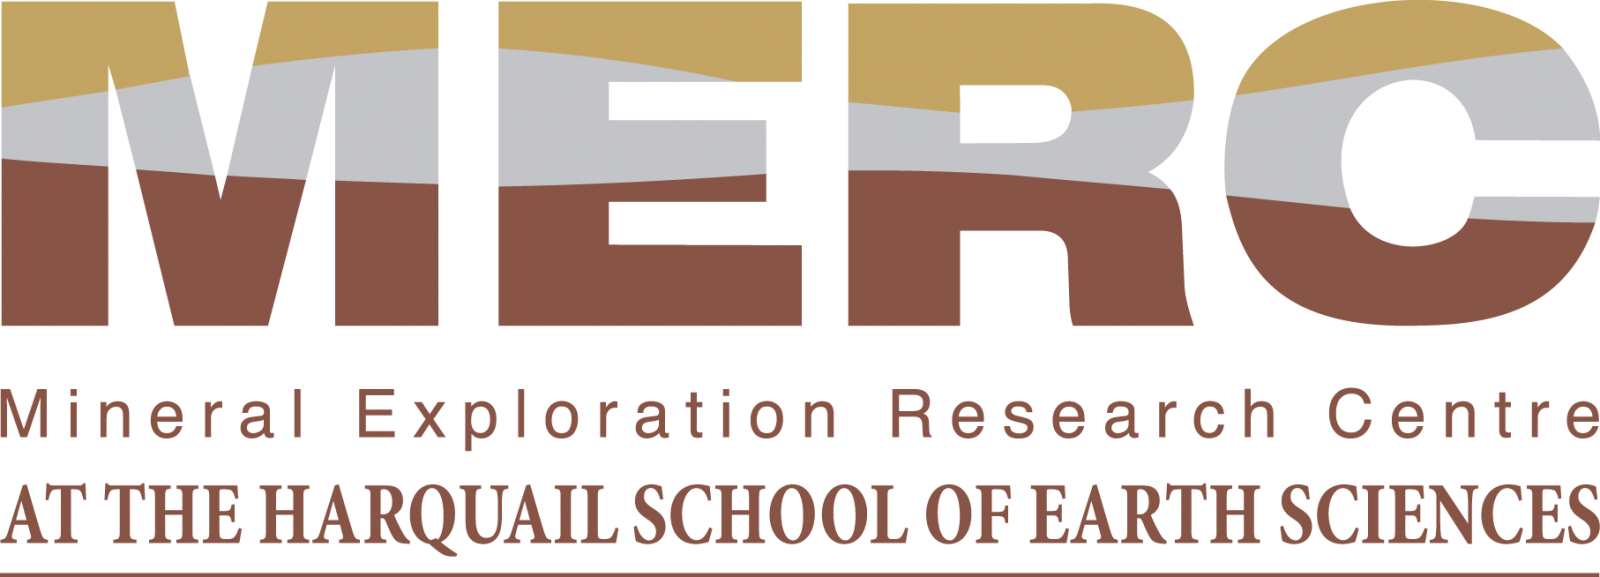 Mineral Exploration Research Centre